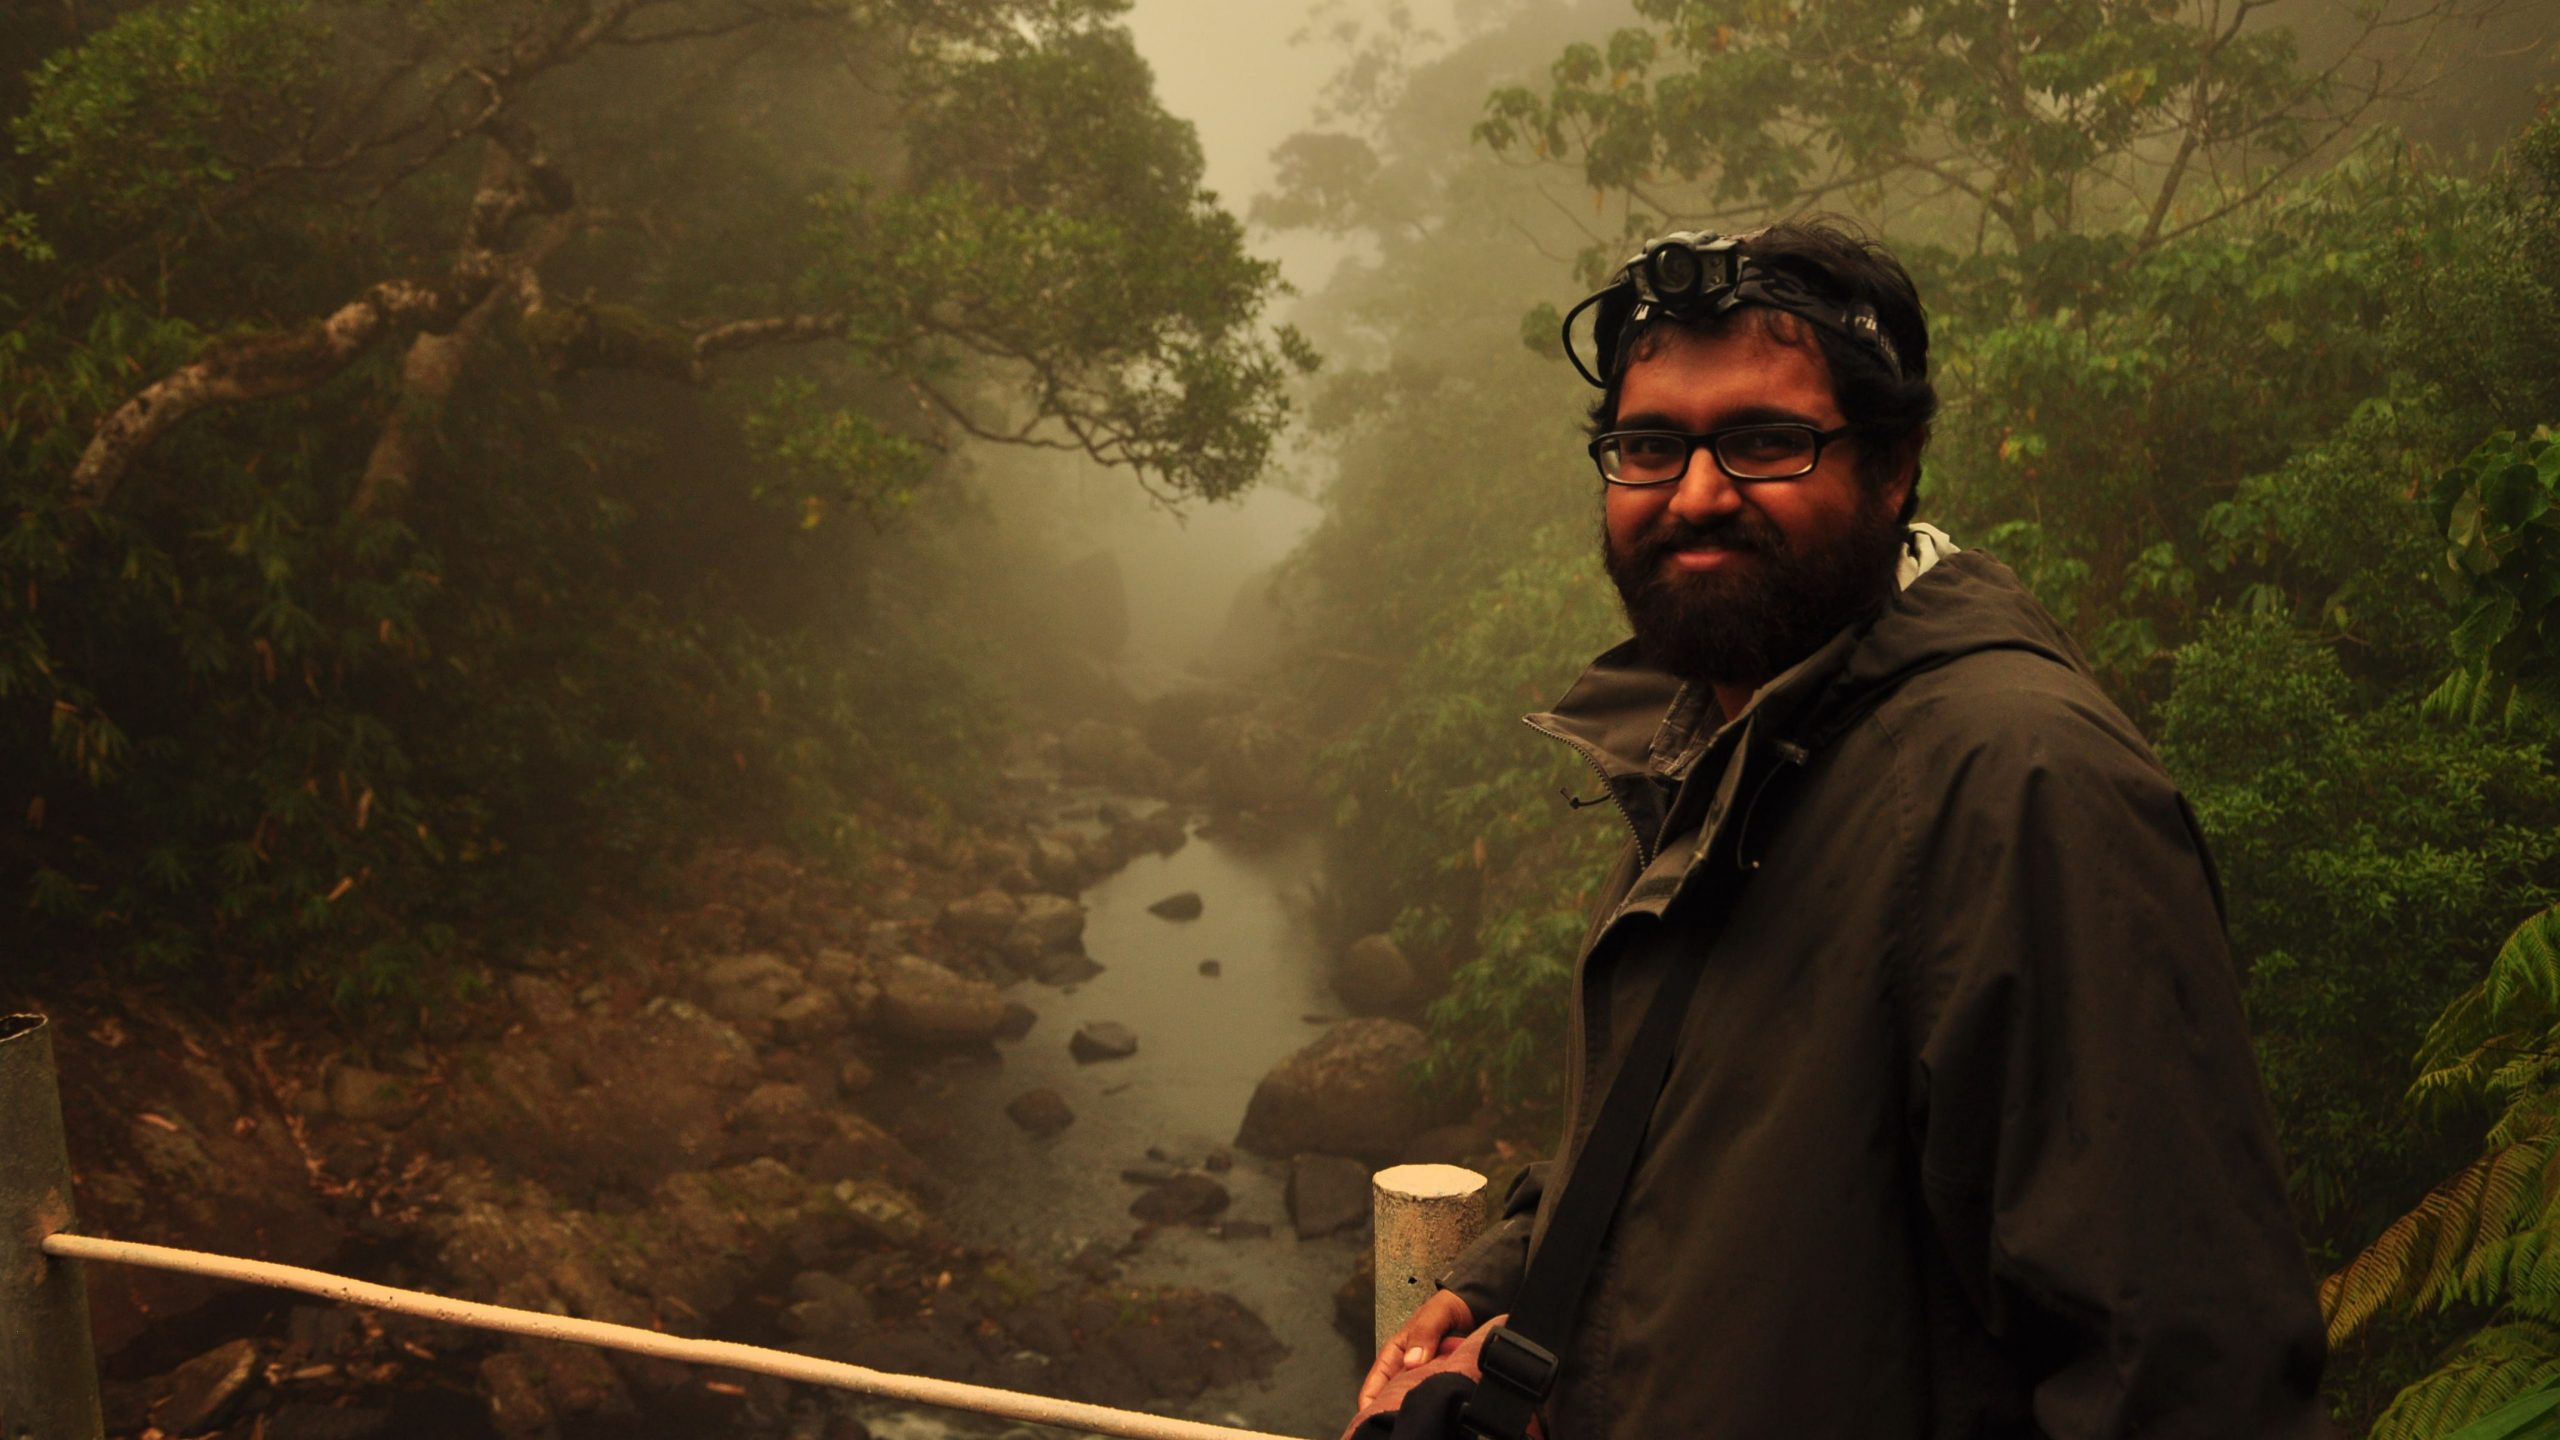 Episode 21: Wetland and Grassland Birds from the Man who Discovered a Frog: with Seshadri K.S.